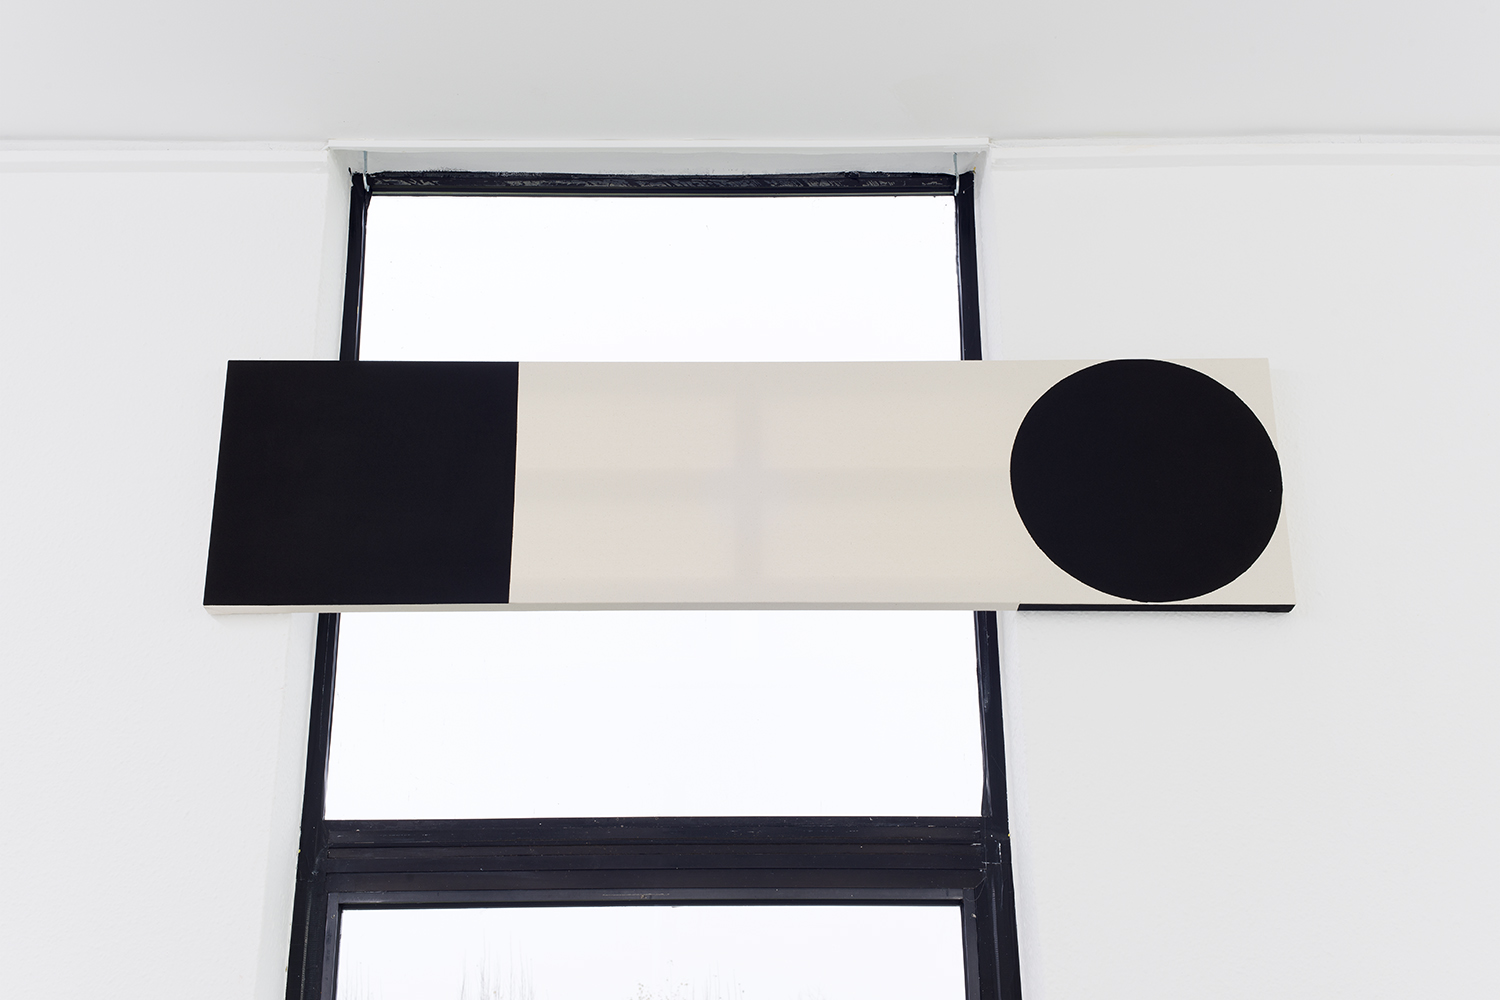 Augustus Thompson  Cig (Sign) , 2014 India Ink and pencil on canvas 18 x 72 inches